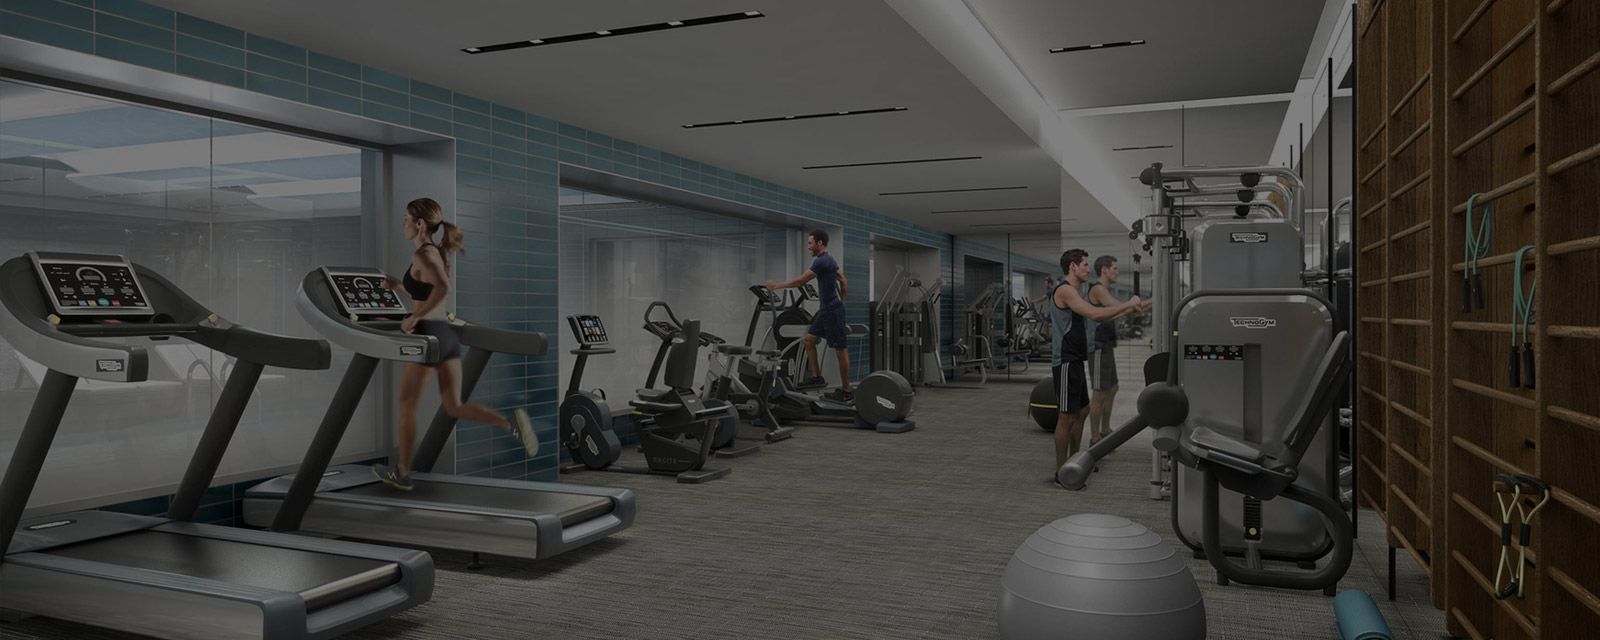 Gym Design and Gym Planning